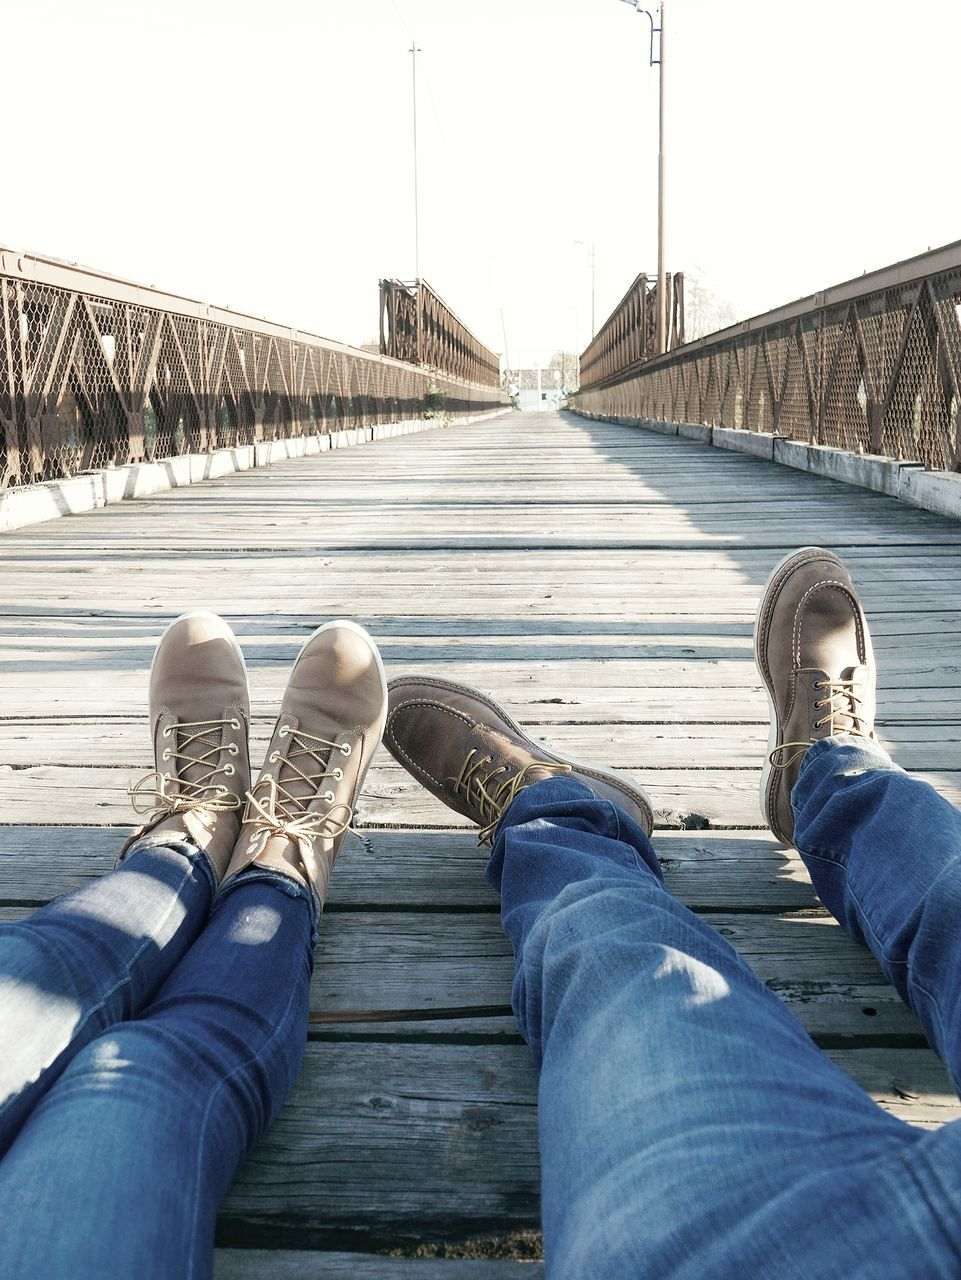 low section, human leg, personal perspective, shoe, human body part, real people, body part, jeans, transportation, architecture, men, sky, built structure, day, casual clothing, bridge, people, lifestyles, connection, leisure activity, bridge - man made structure, outdoors, human foot